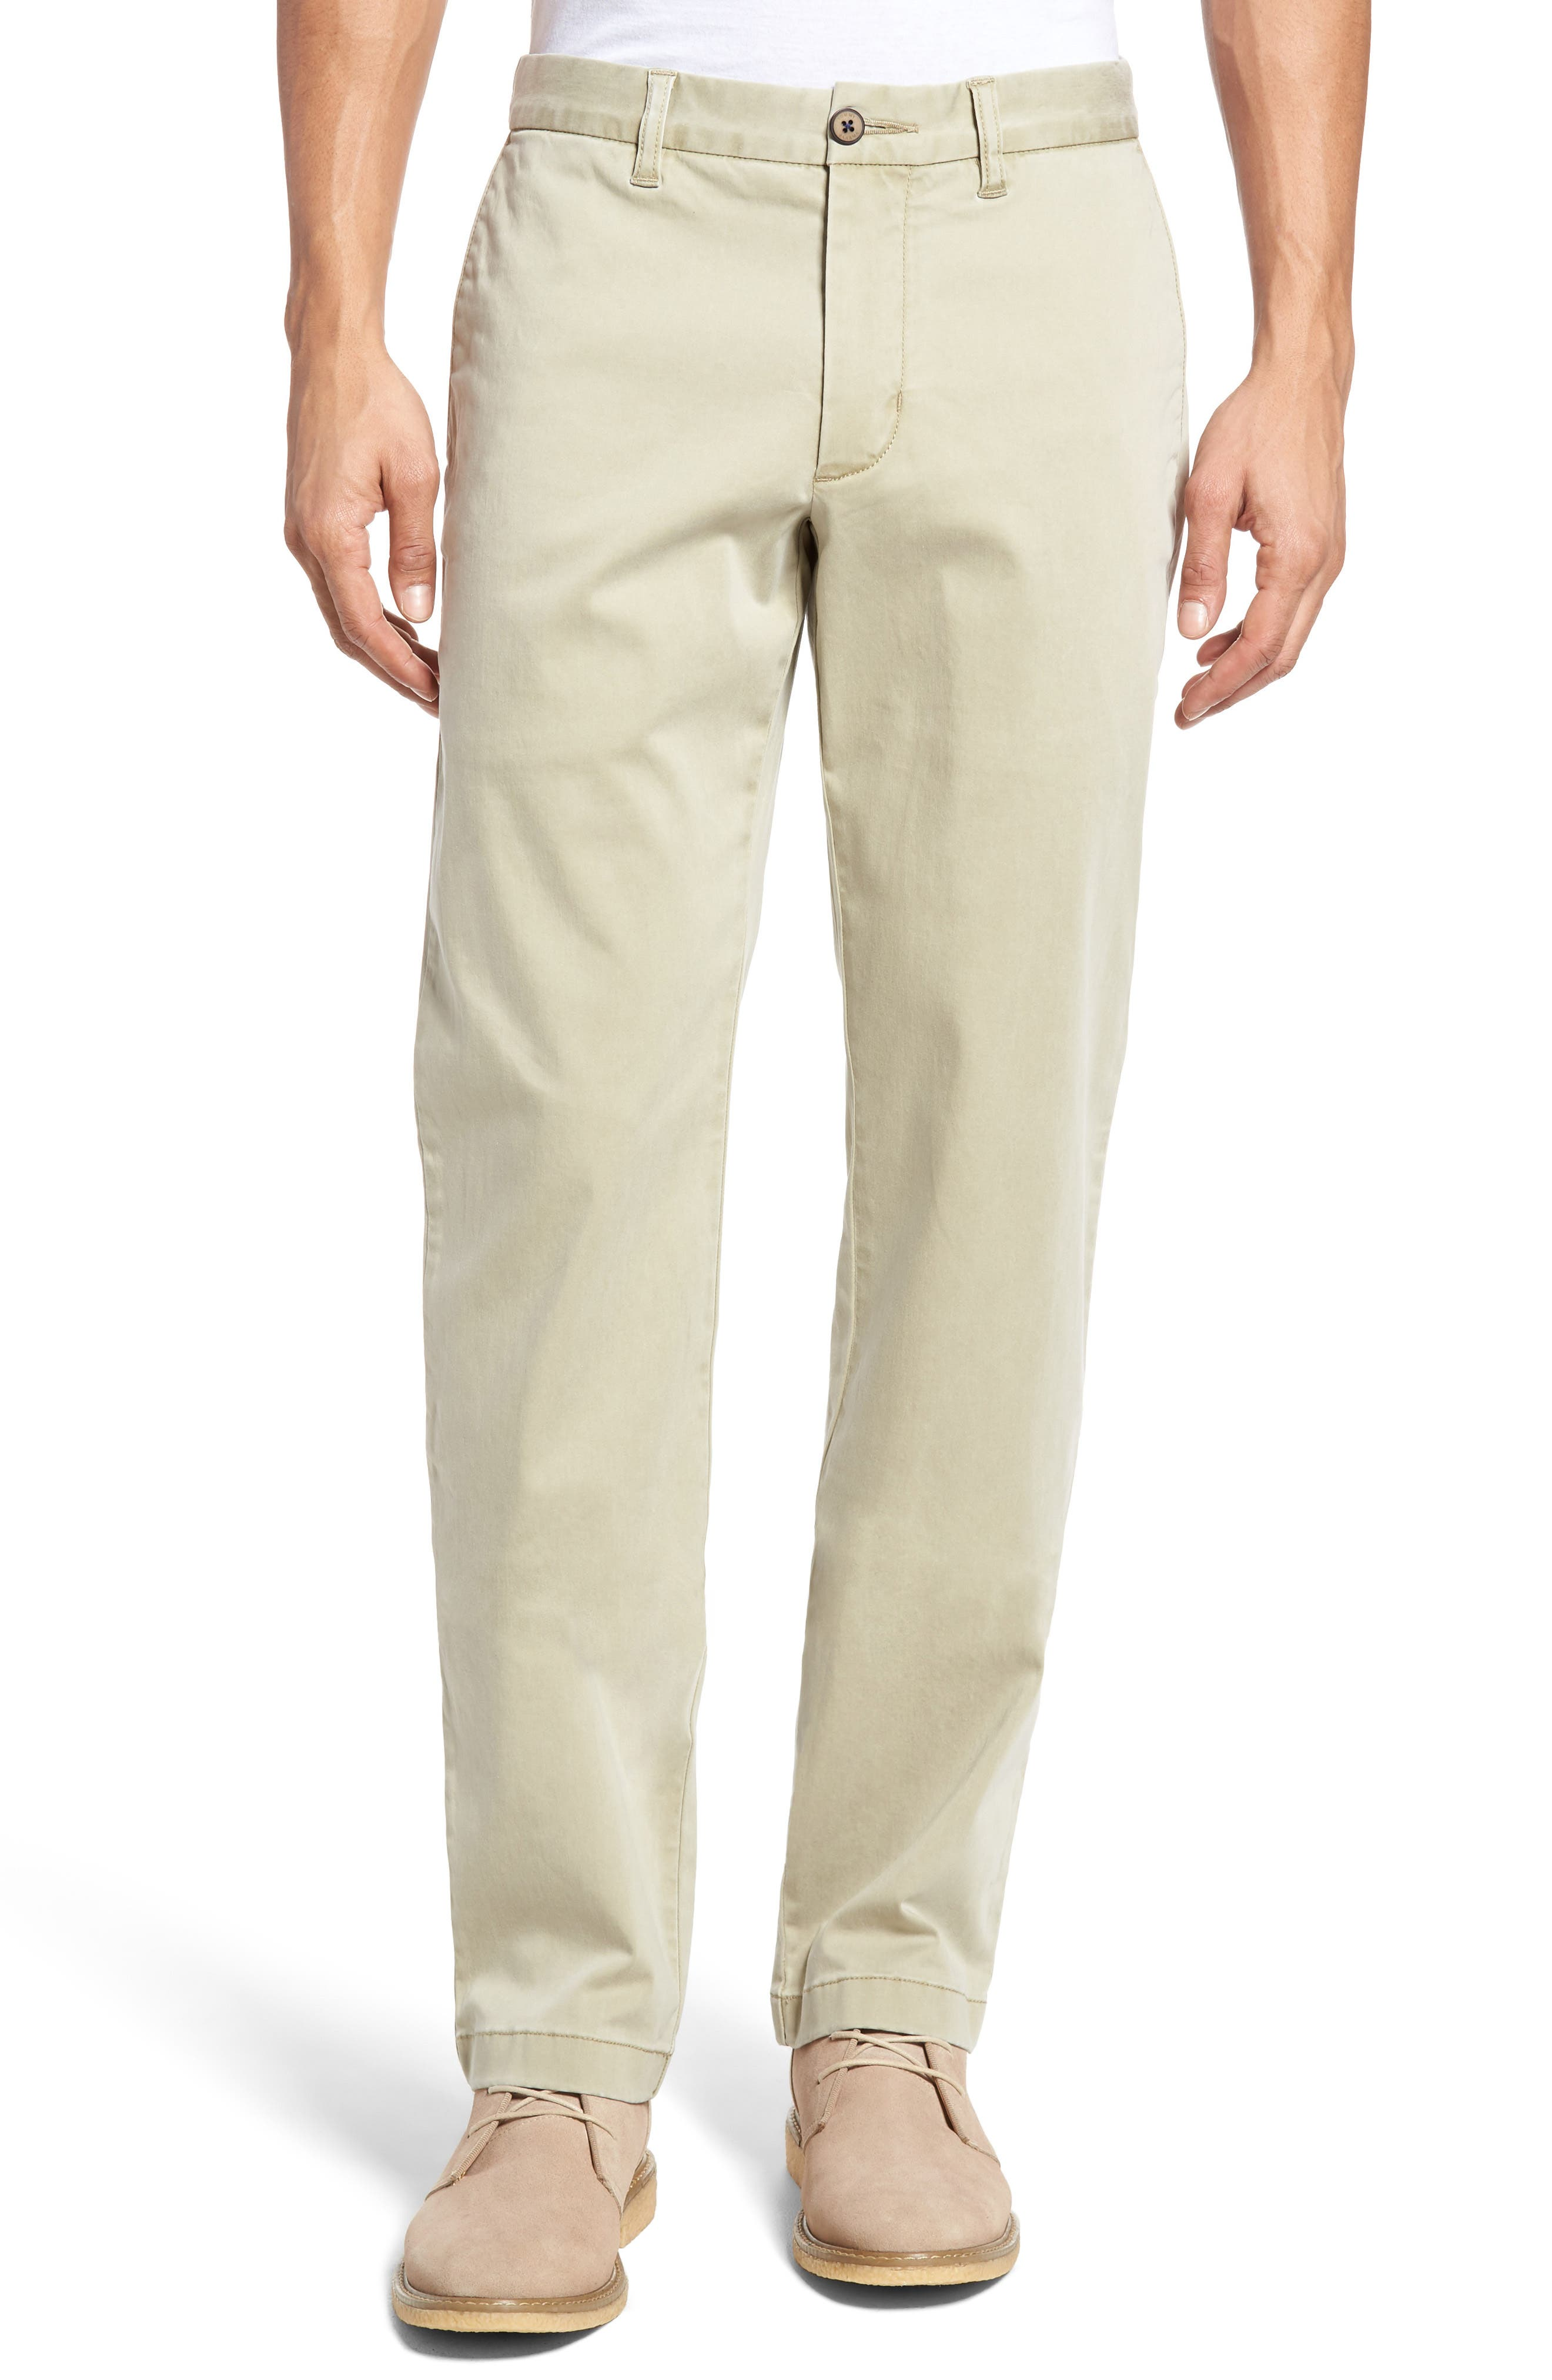 Boracay Flat Front Pants,                             Main thumbnail 1, color,                             KHAKI